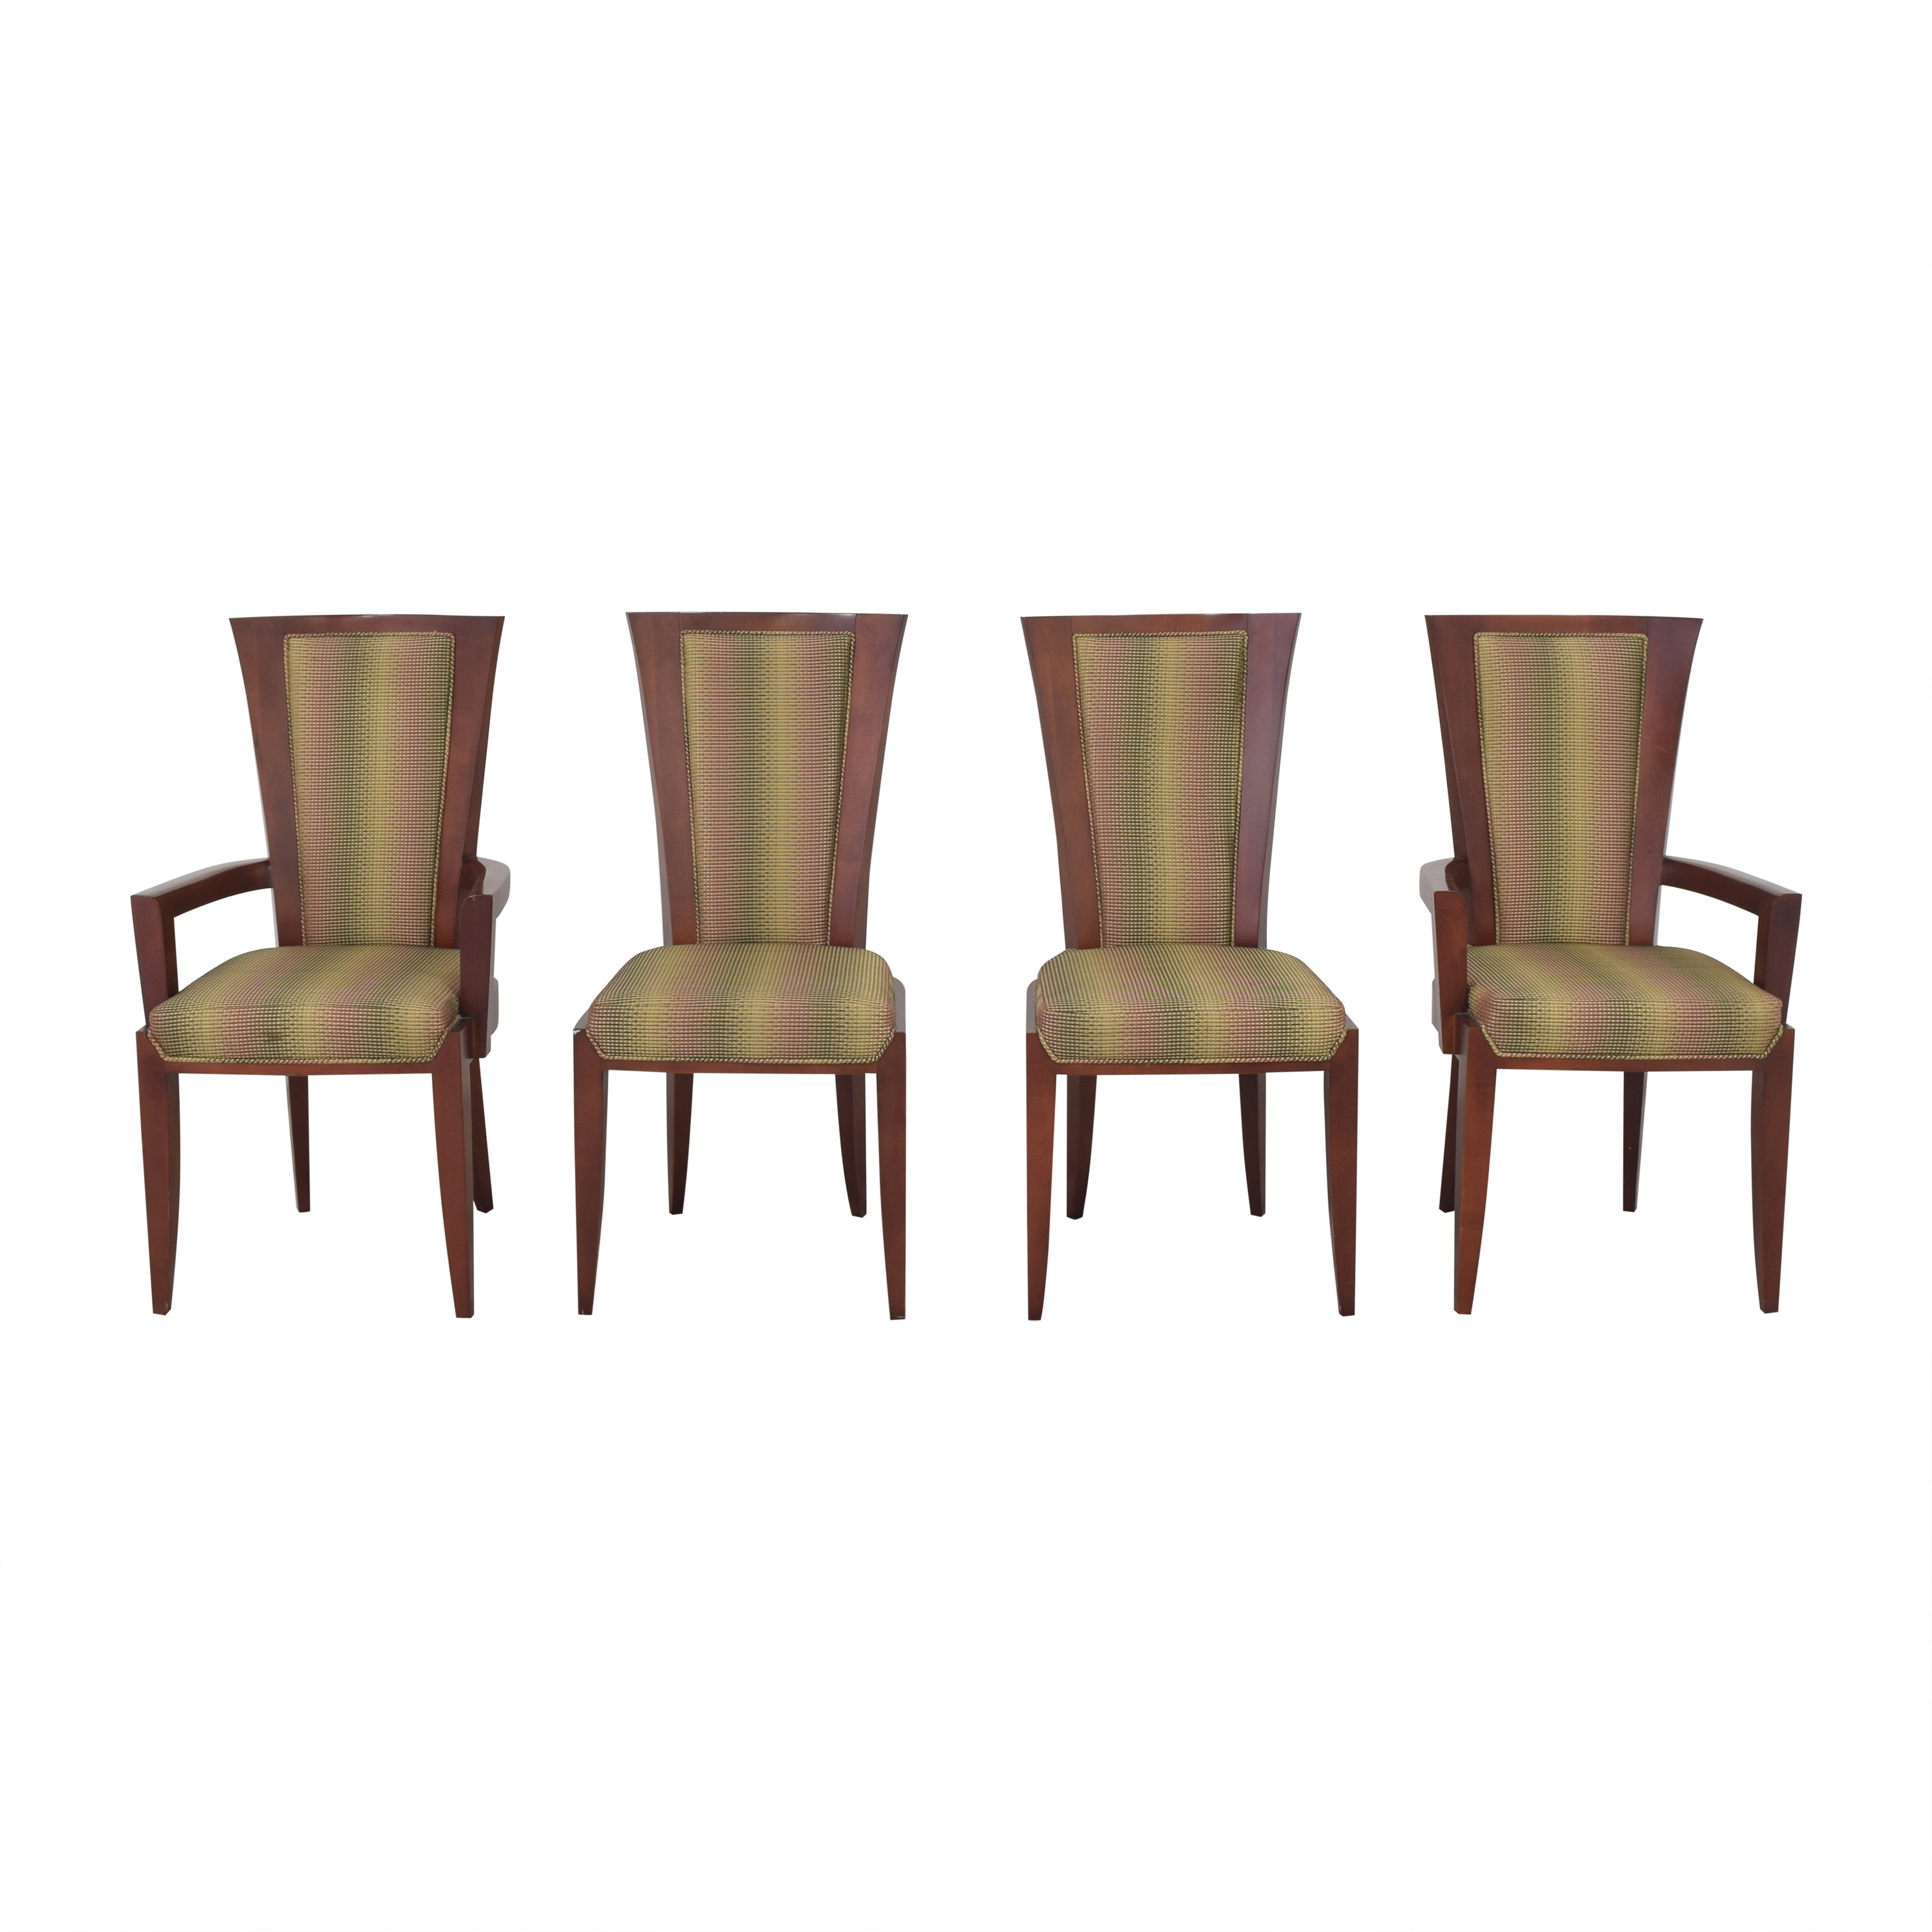 Upholstered Art Deco Dining Chairs multi